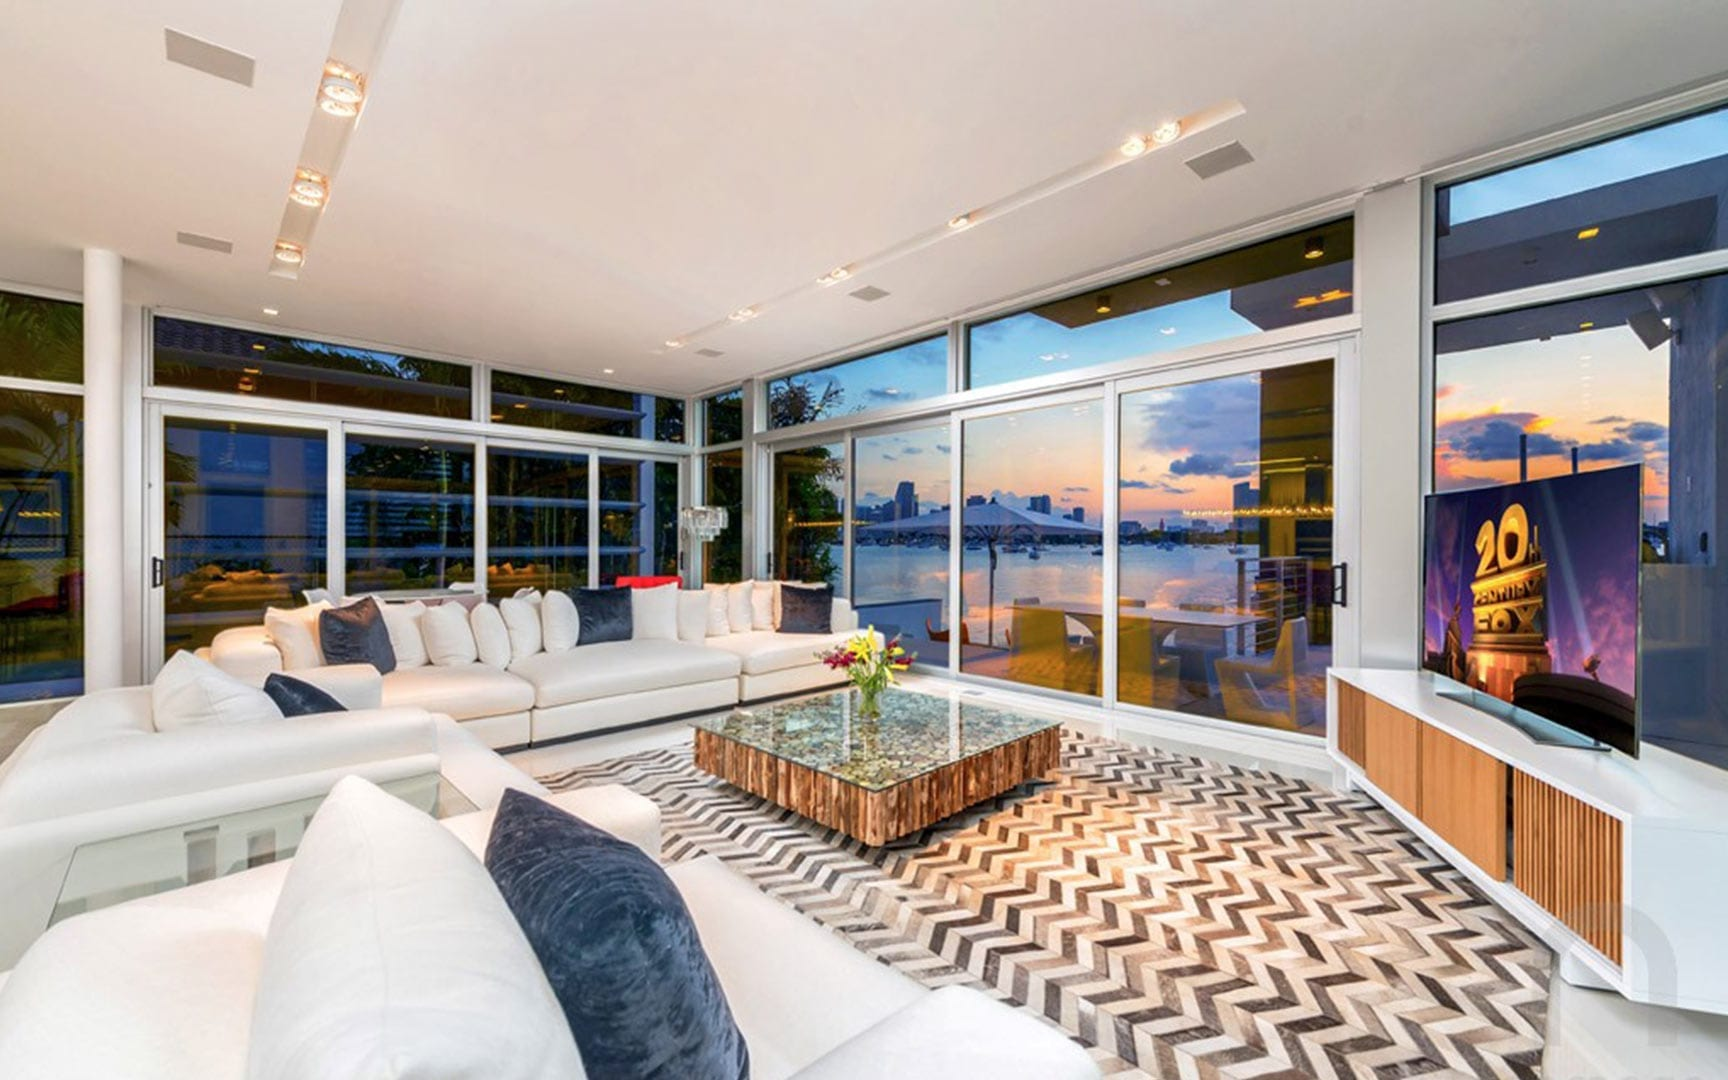 Ultra-Modern luxury waterfront vacation rental home with pool and boat dock in Miami - Villa Manuela - Nomade Villa Collection